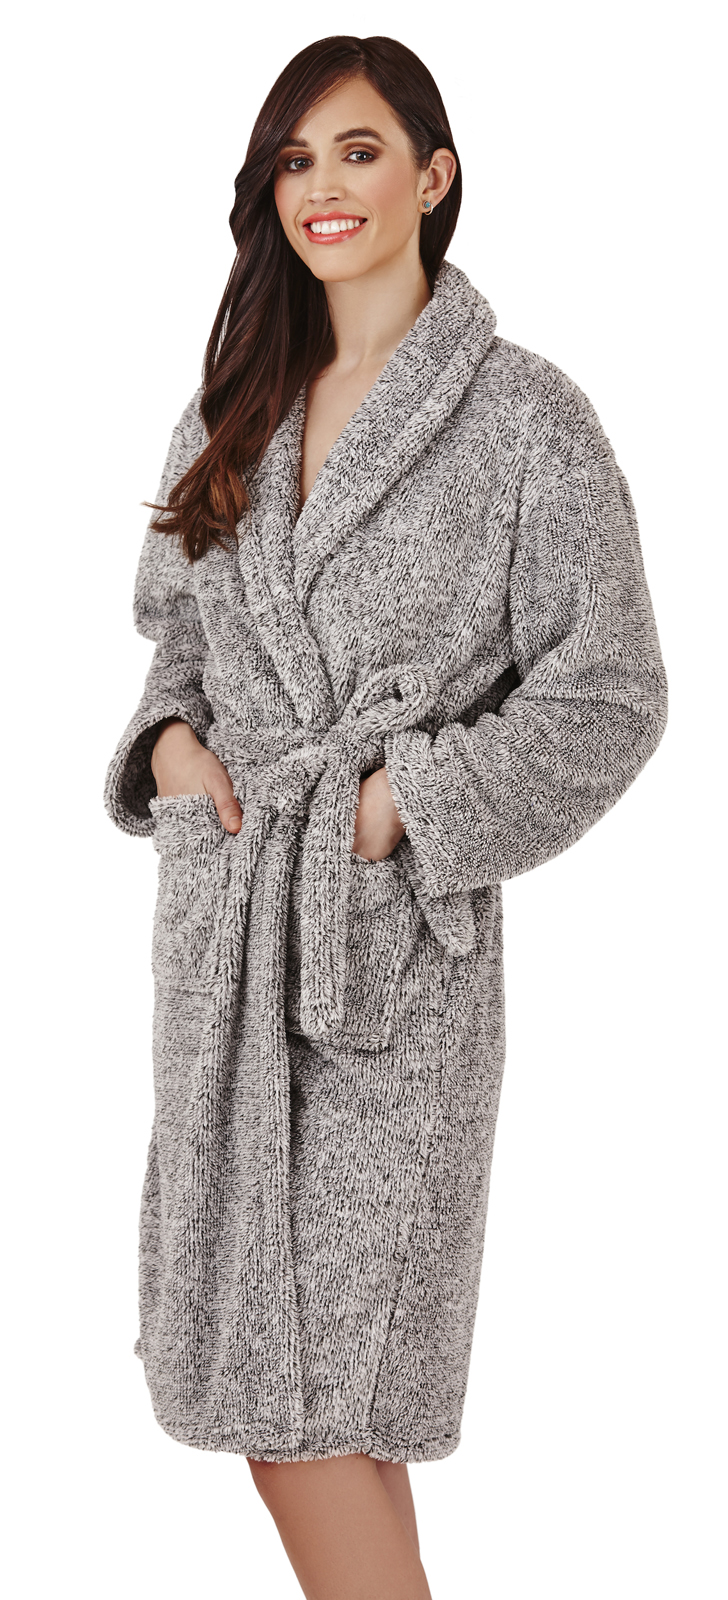 Shop for womens flannel robe online at Target. Free shipping on purchases over $35 and save 5% every day with your Target REDcard.